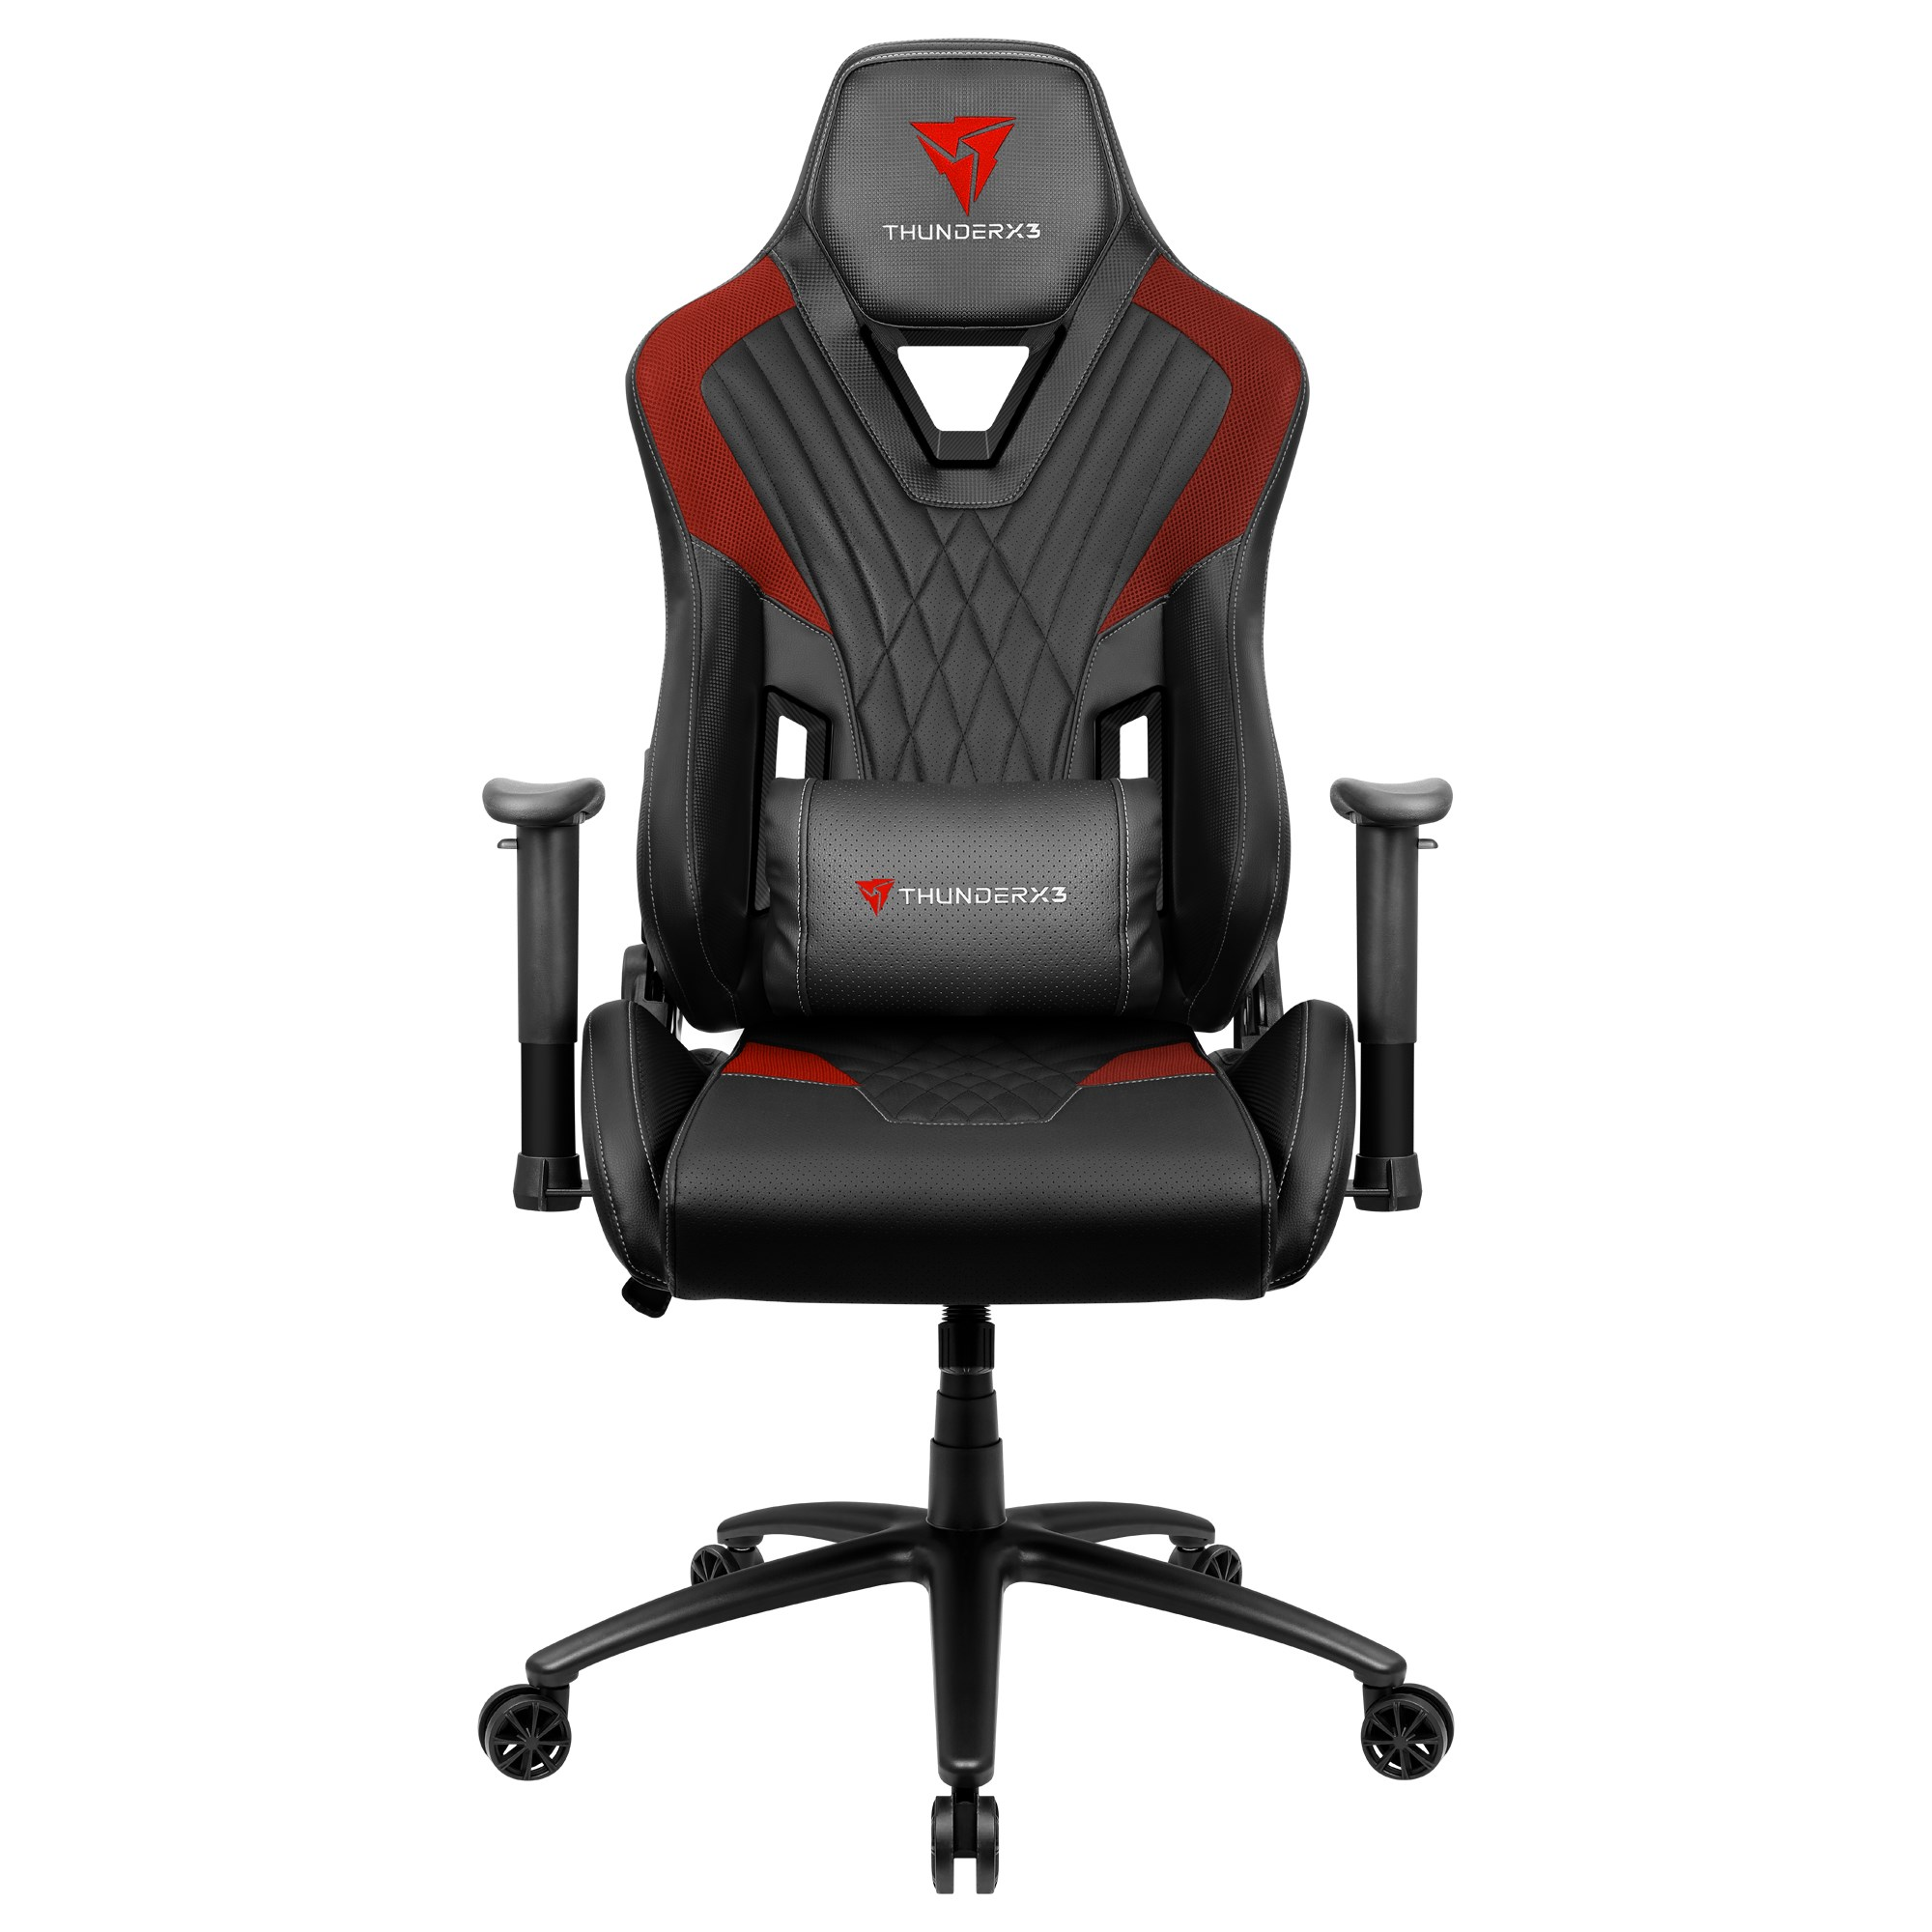 ThunderX3 DC3, Gaming Chair, Technology AIR, Breathable And Adjustable, Red